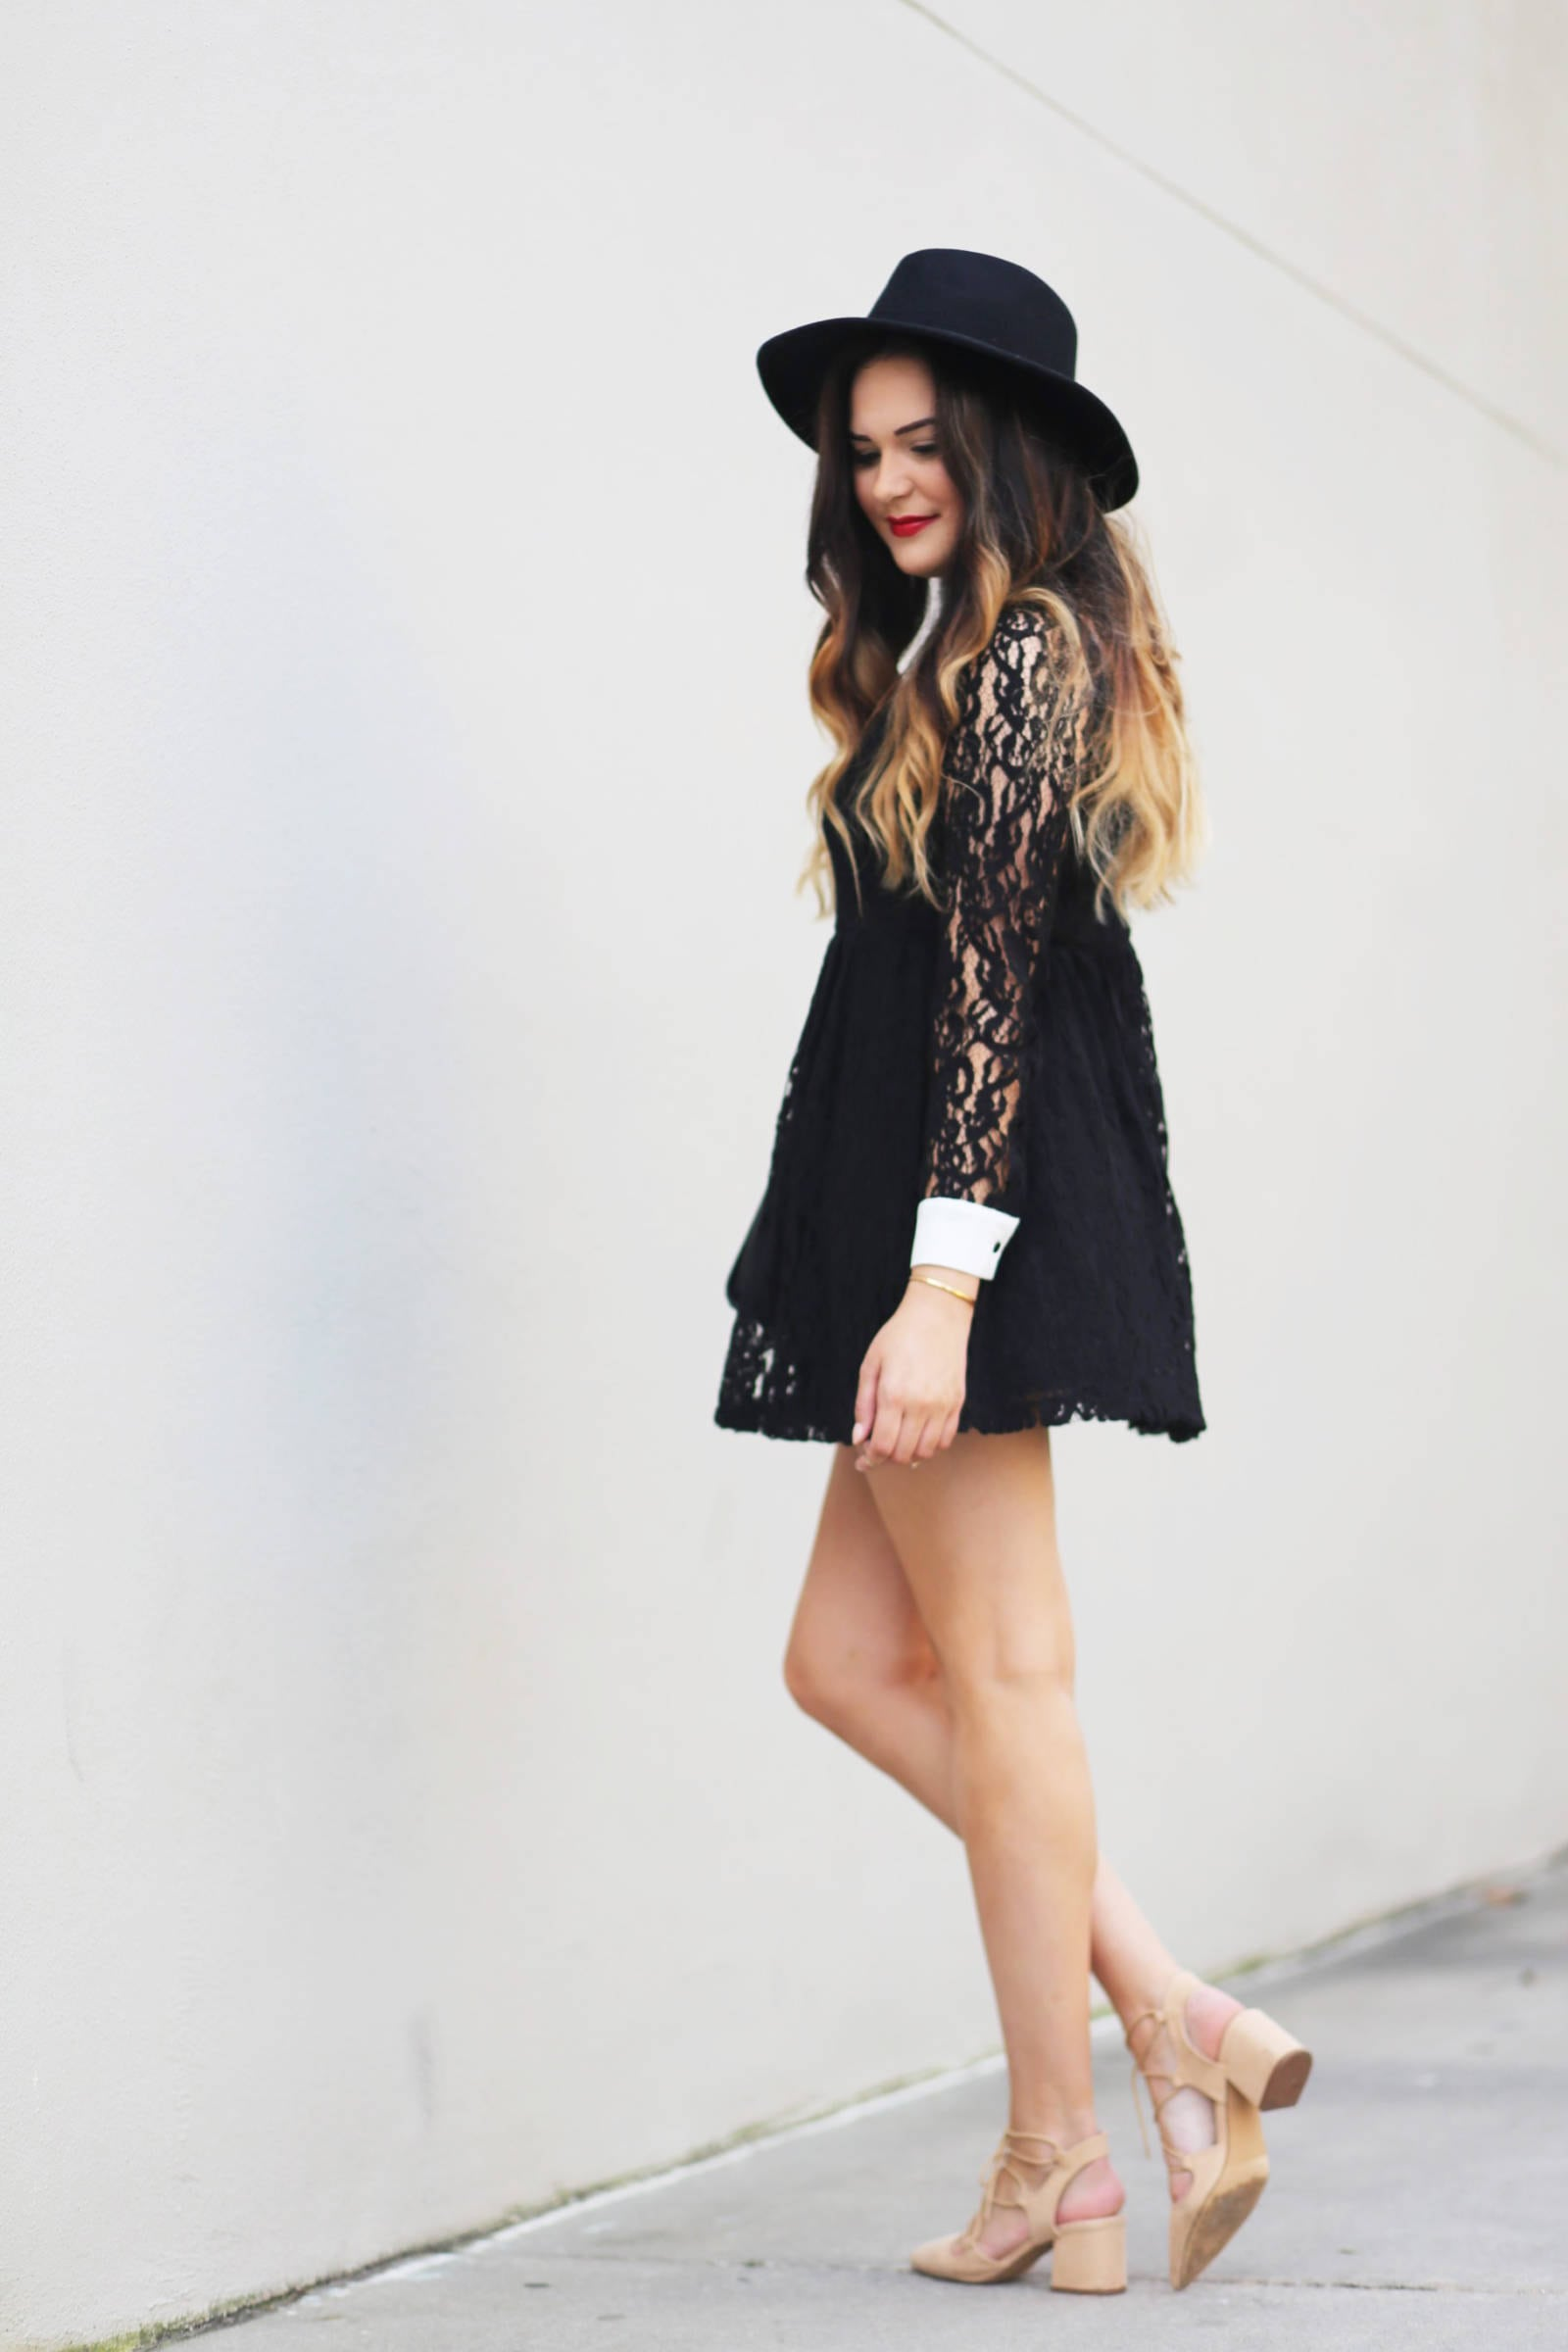 Fashion blogger Mash Elle shares a black lace dress for a day or night date. Forever 21 dress, Michael Kors purse, Elizabeth Arden lipstick, Daniel Wellington bracelet